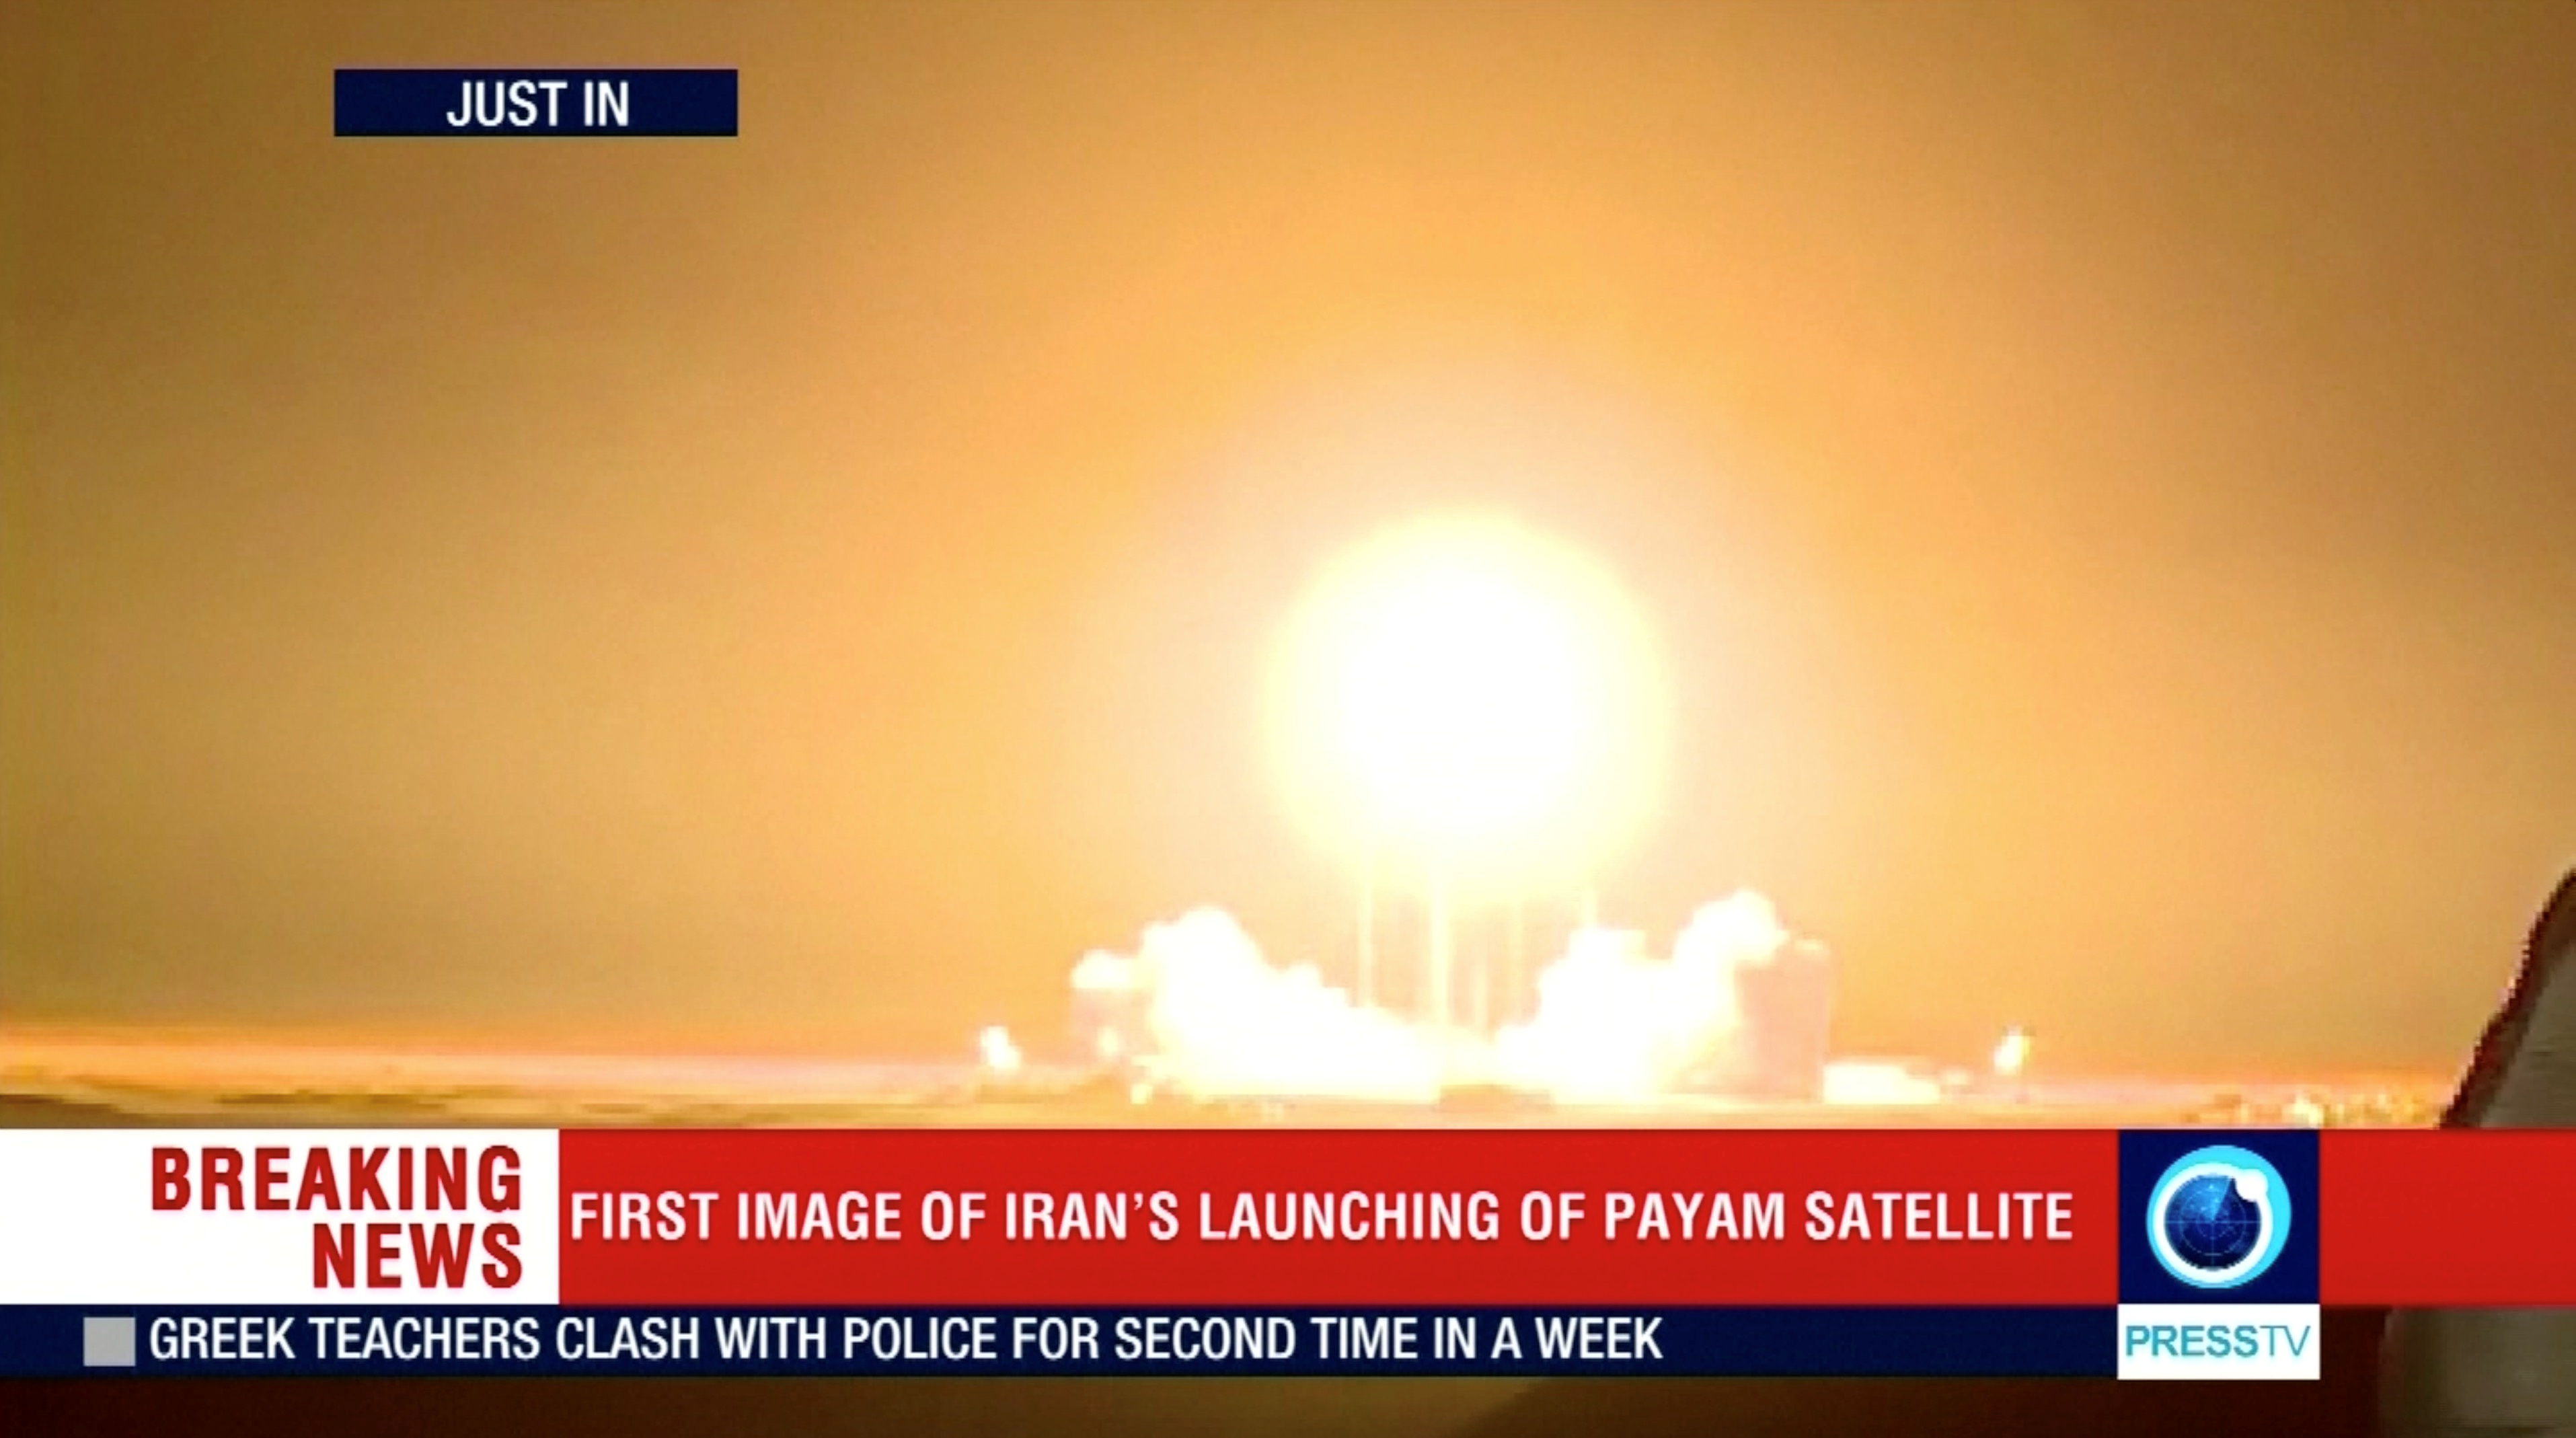 The Payam satellite is launched in Iran, January 15, 2019, in this still image taken from video. Reuters TV/via REUTERS